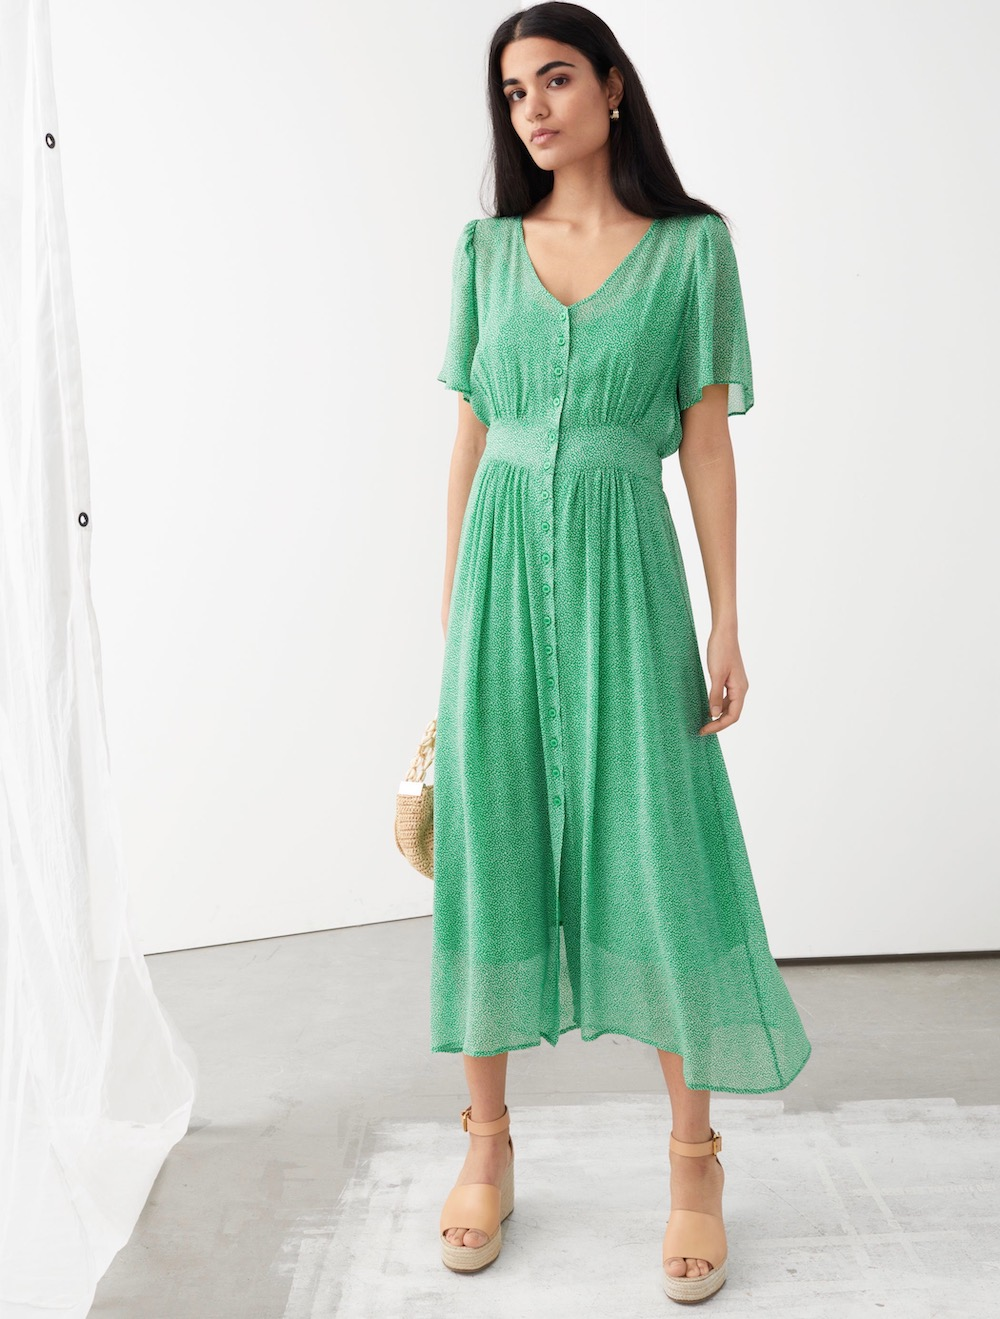 Summer Wedding Guest Dresses For All Ceremonies Thefashionspot,Wedding Dress Glitter Tulle